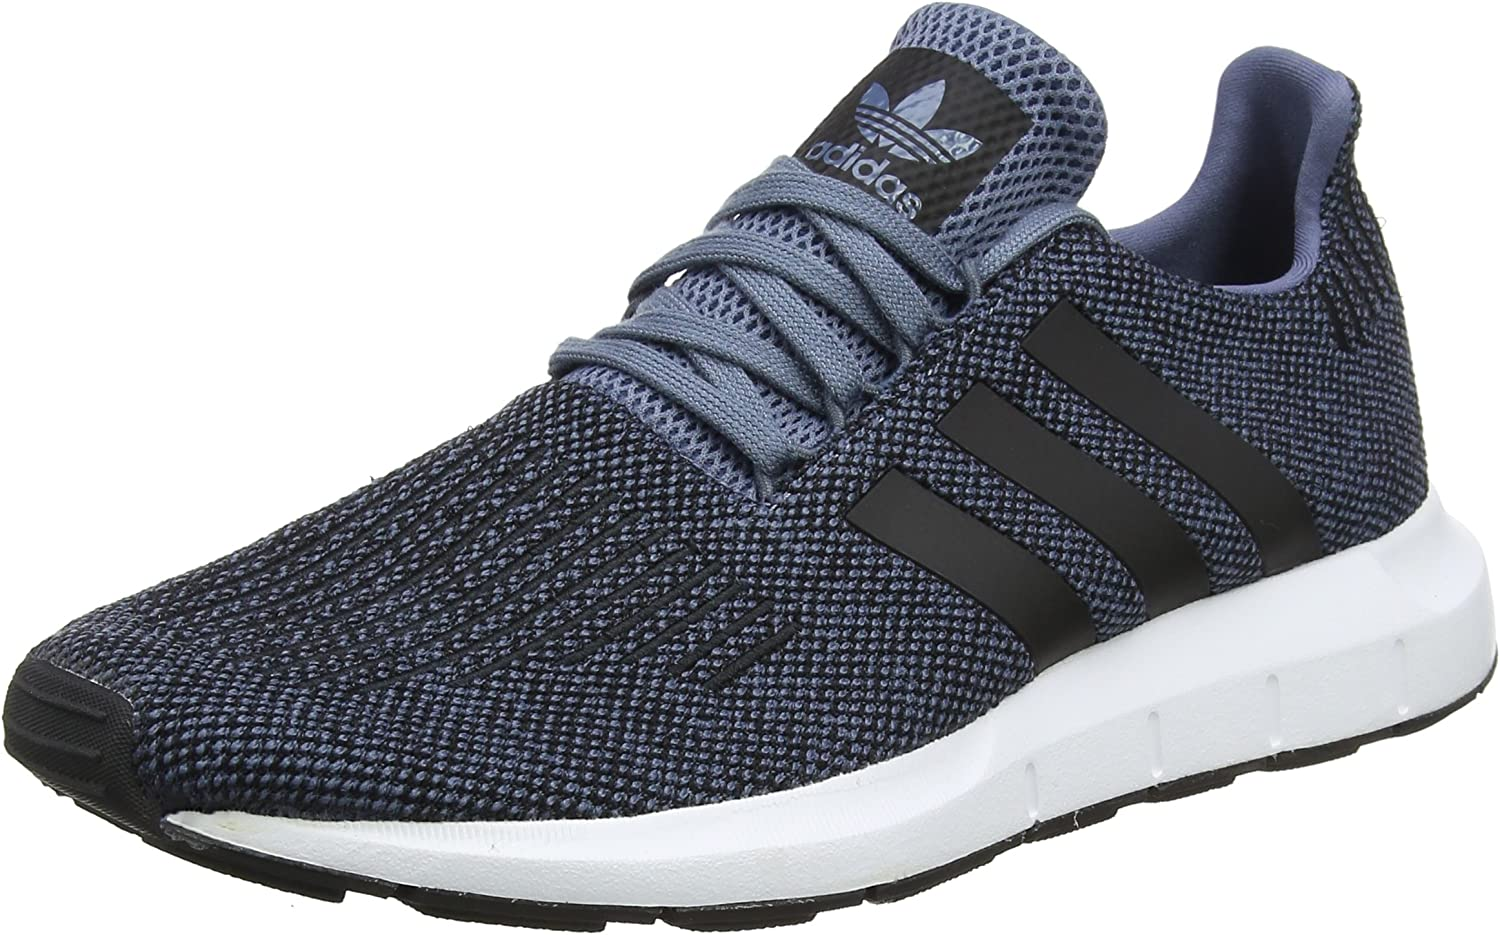 Adidas Men's Swift Run Fitness shoes